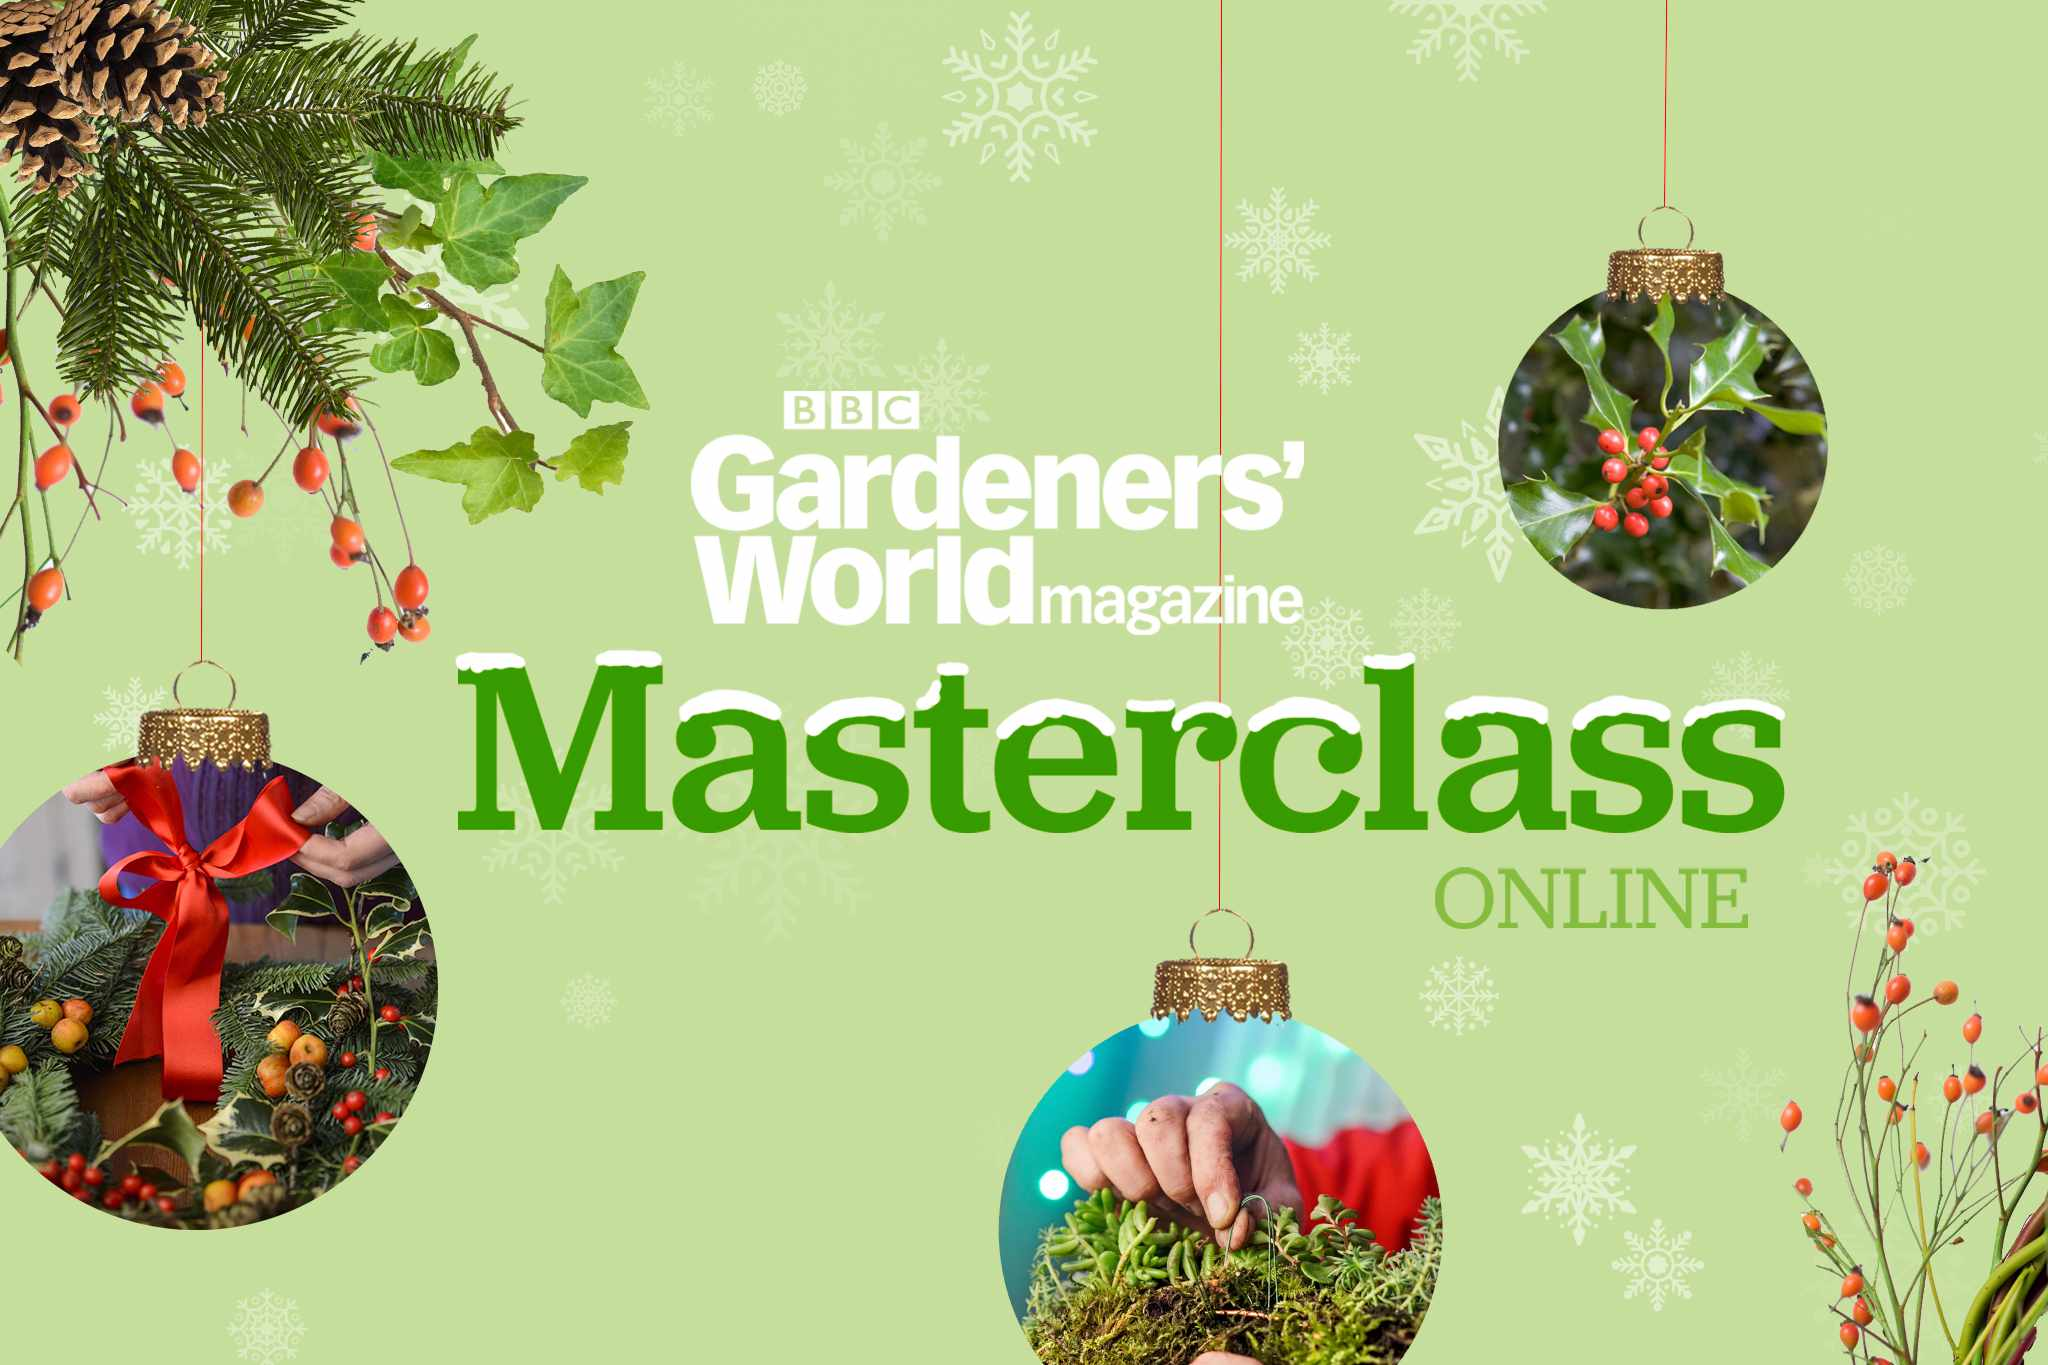 BBC Gardeners' World Magazine Masterclass Online: Christmas Wreaths, Garlands and other Living Decorations